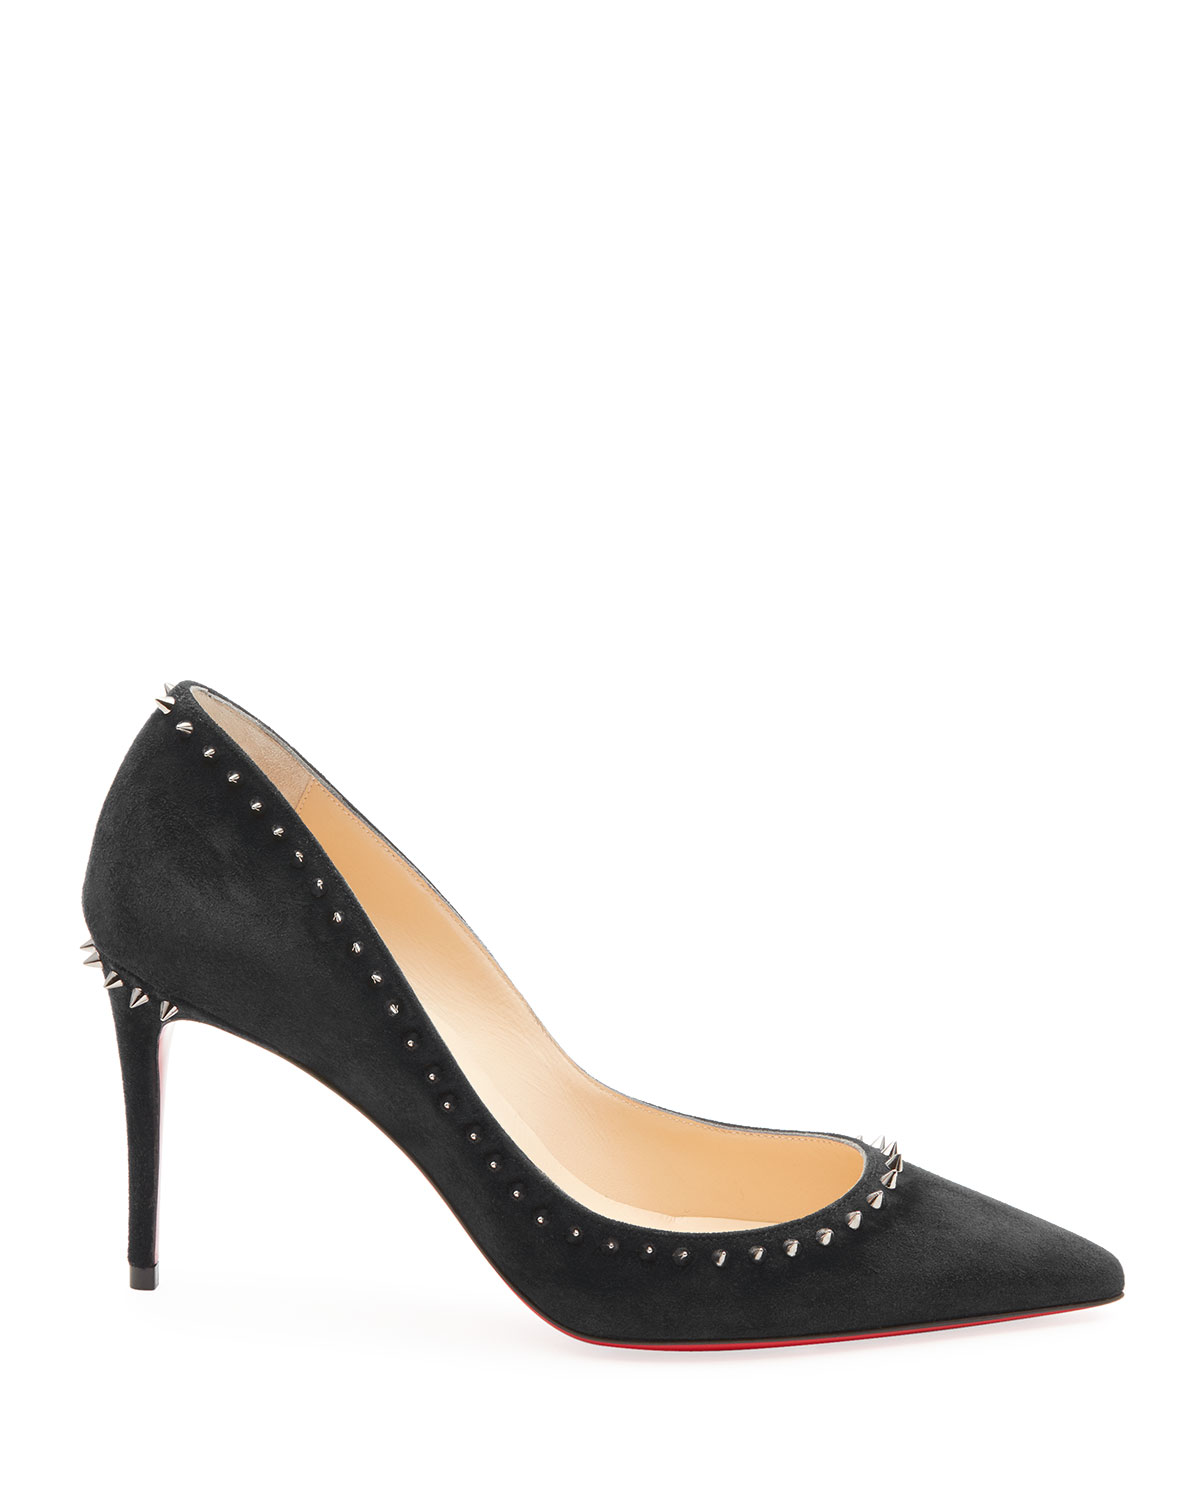 57ae834c30c Anjalina Suede Spiked Red Sole Pump